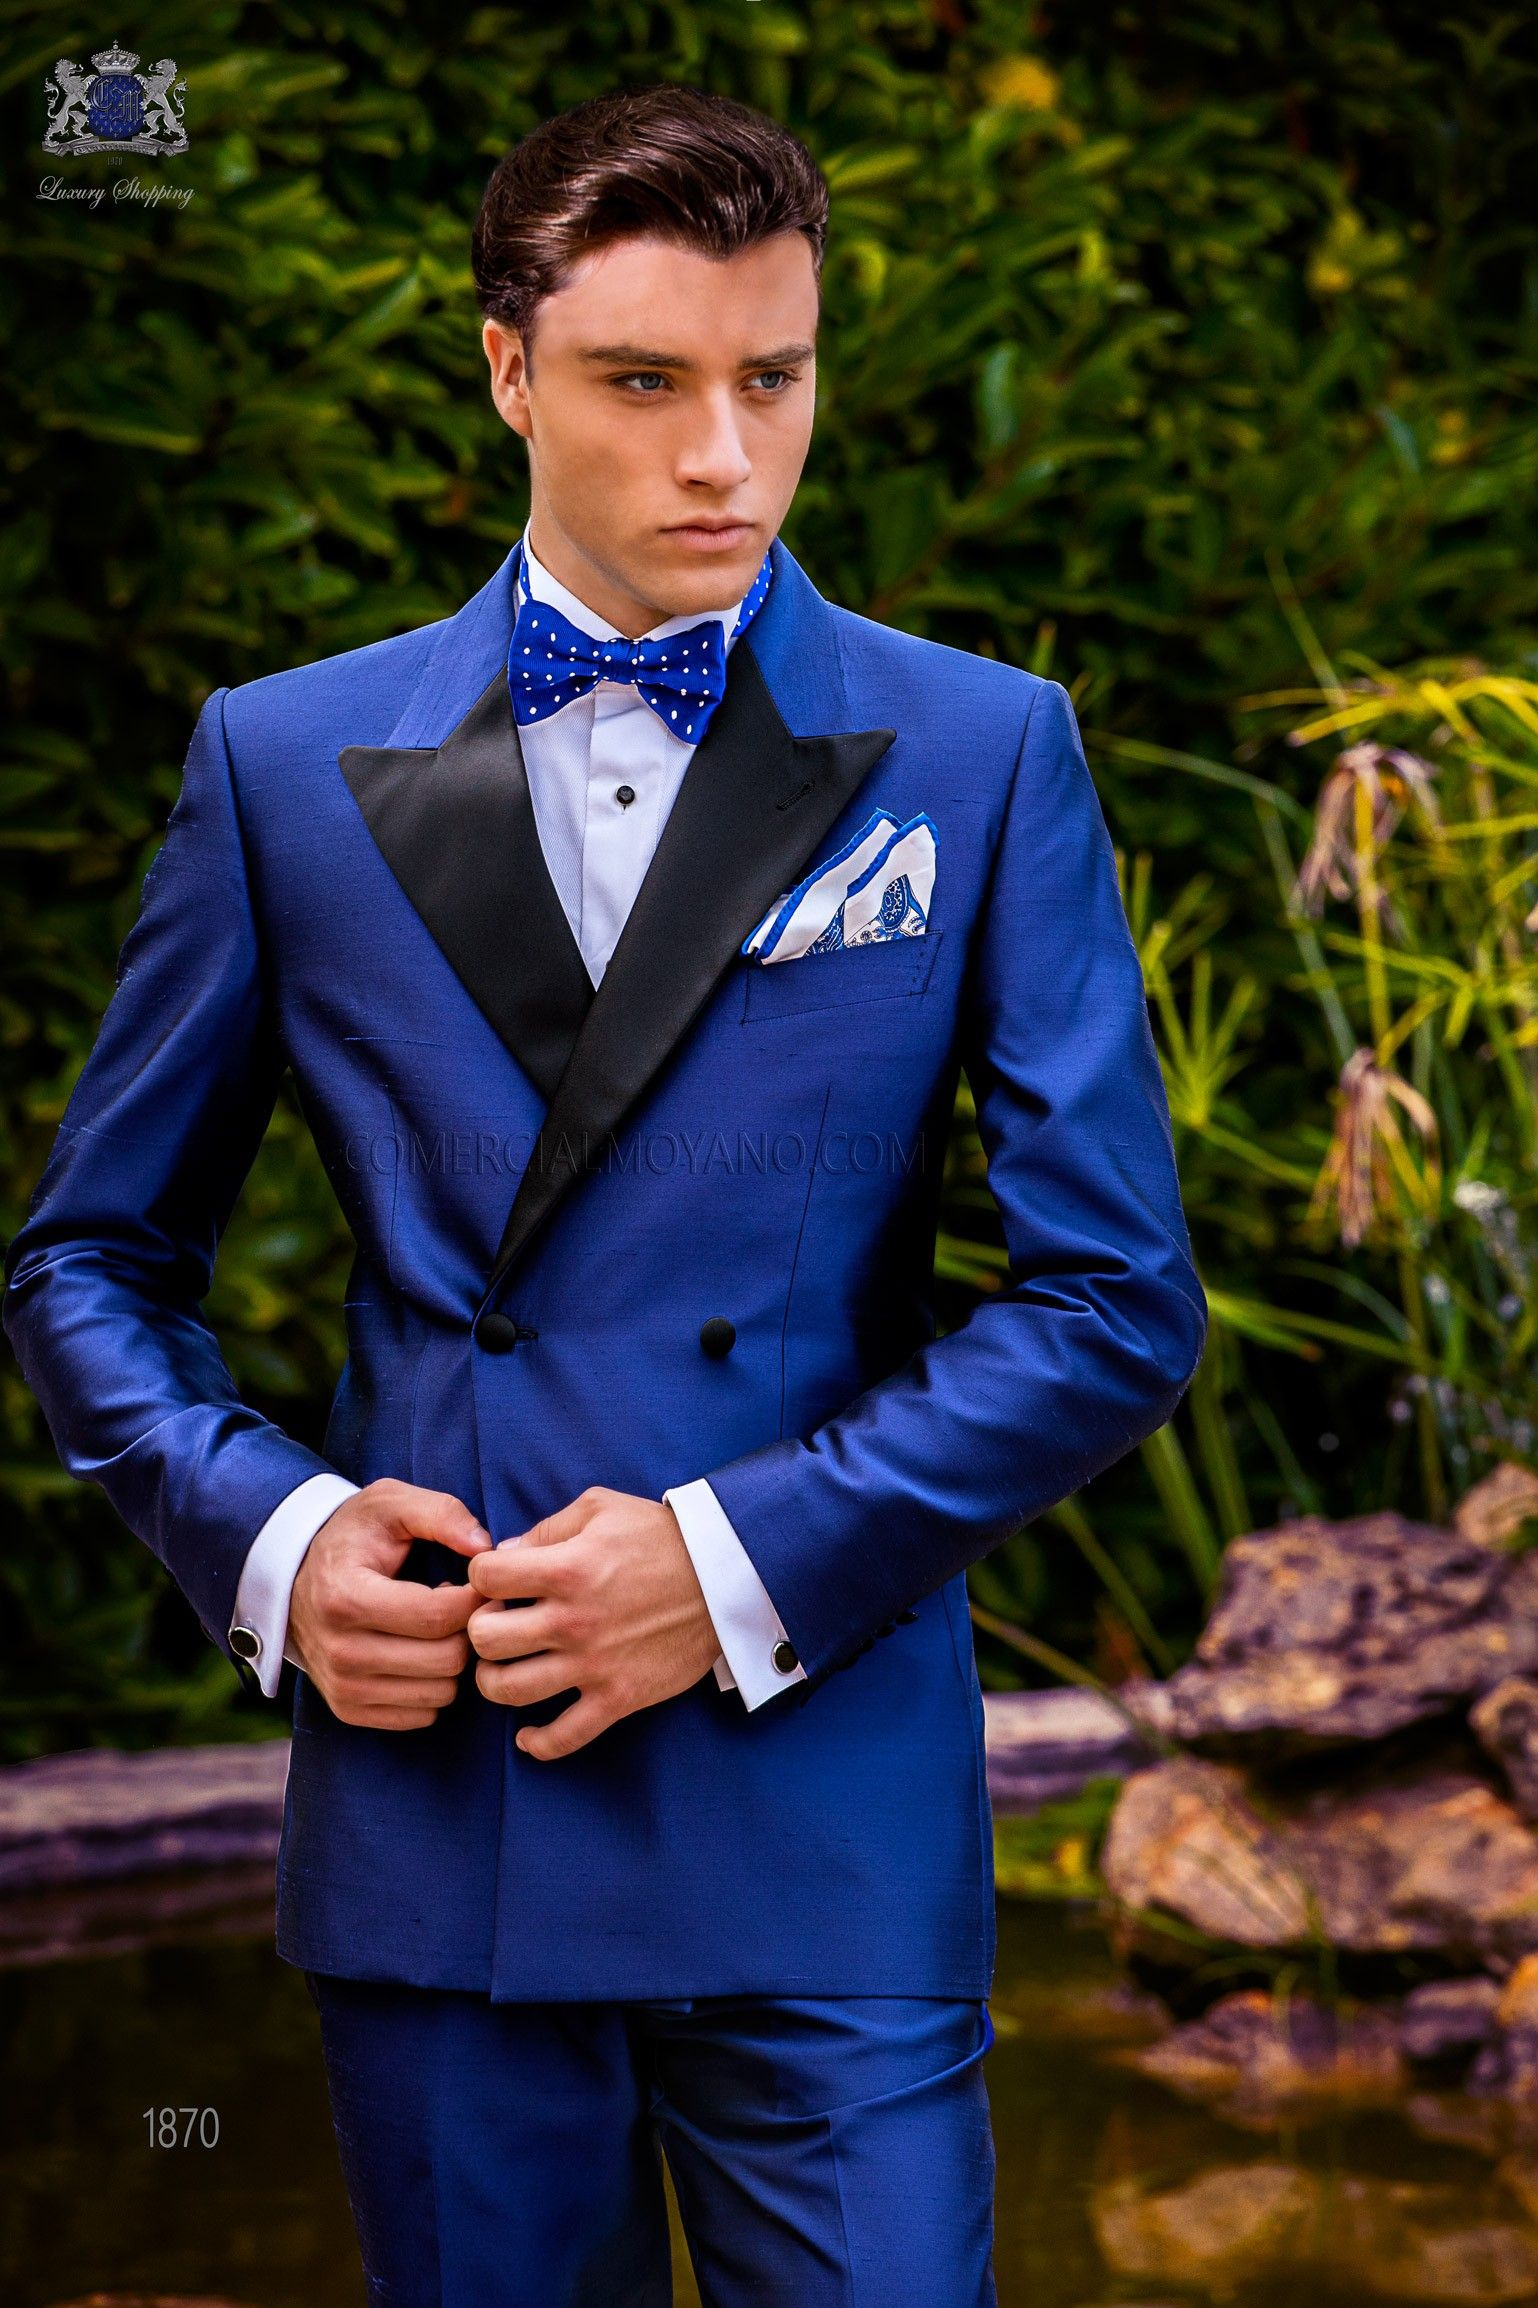 Italian Double Breasted Royal Blue Tuxedo With Satin Peak Lapels And 4 Covered Buttons Shantung Silk Mix Fabric Tuxedo Tuxedo For Men Blue Tuxedos Black Tie